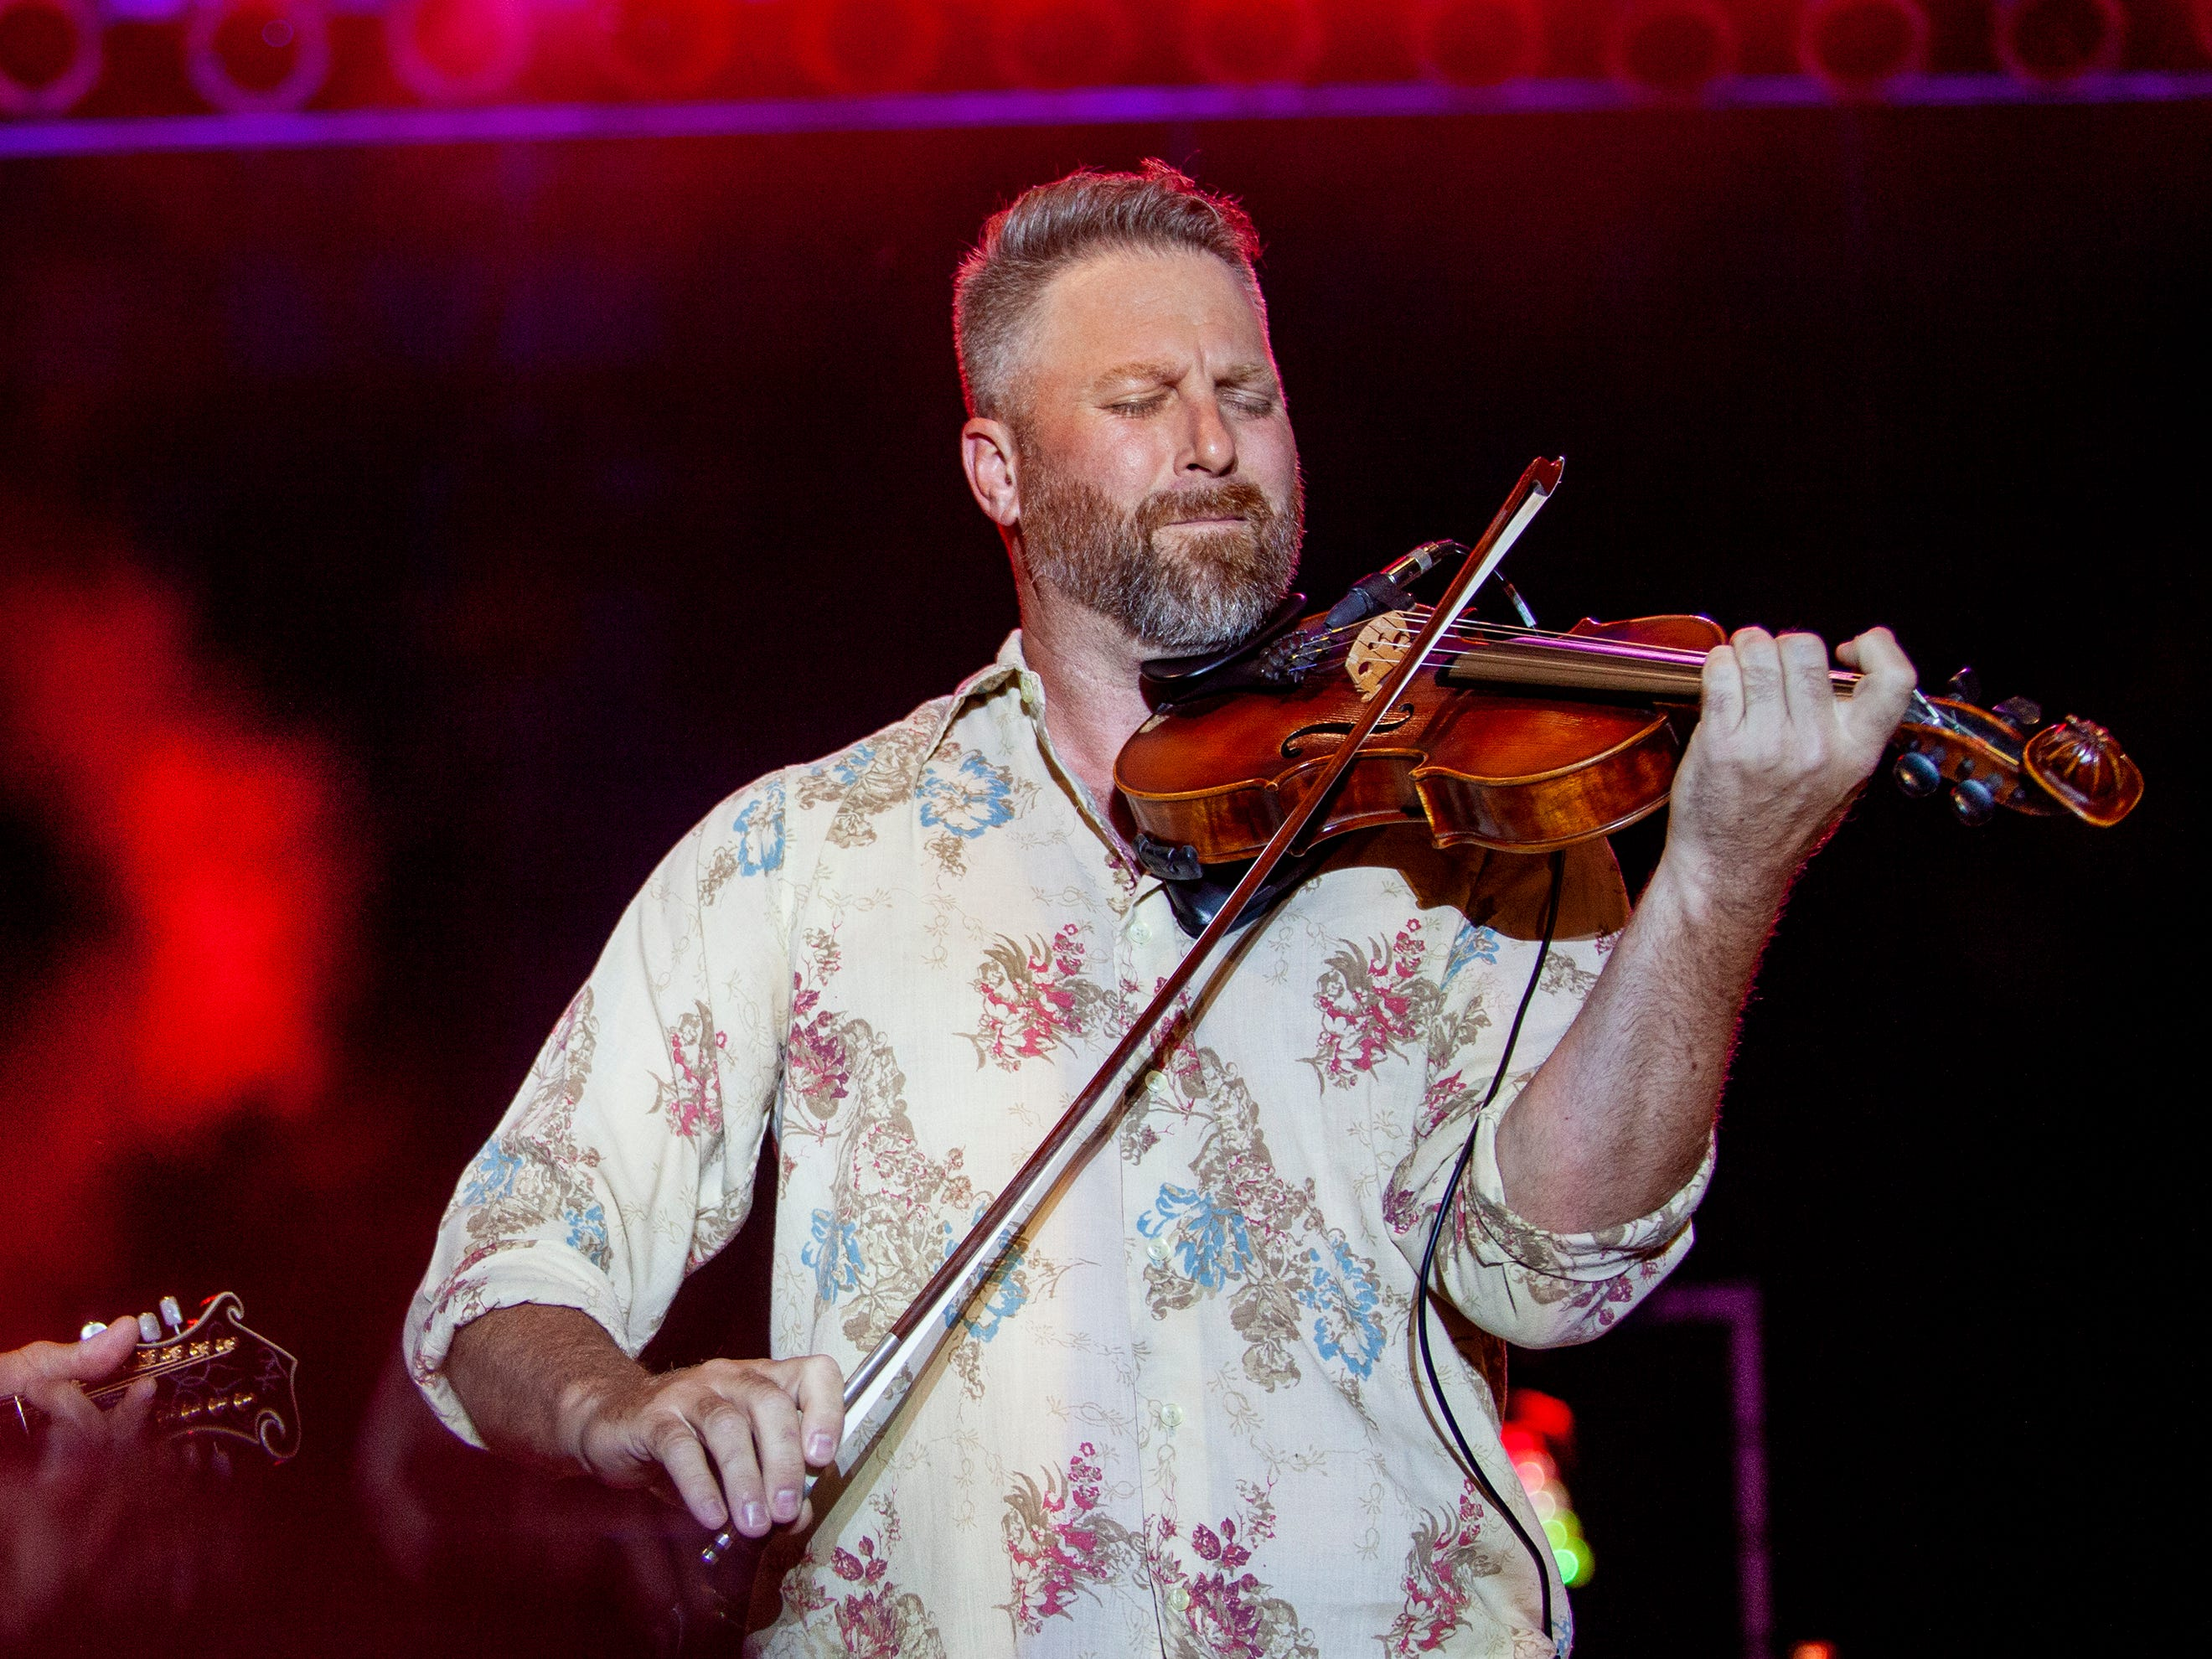 Josh Turner (left) smiles as his fiddle player takes the lead at the Kentucky State Fair on Friday, August 24, 2018.